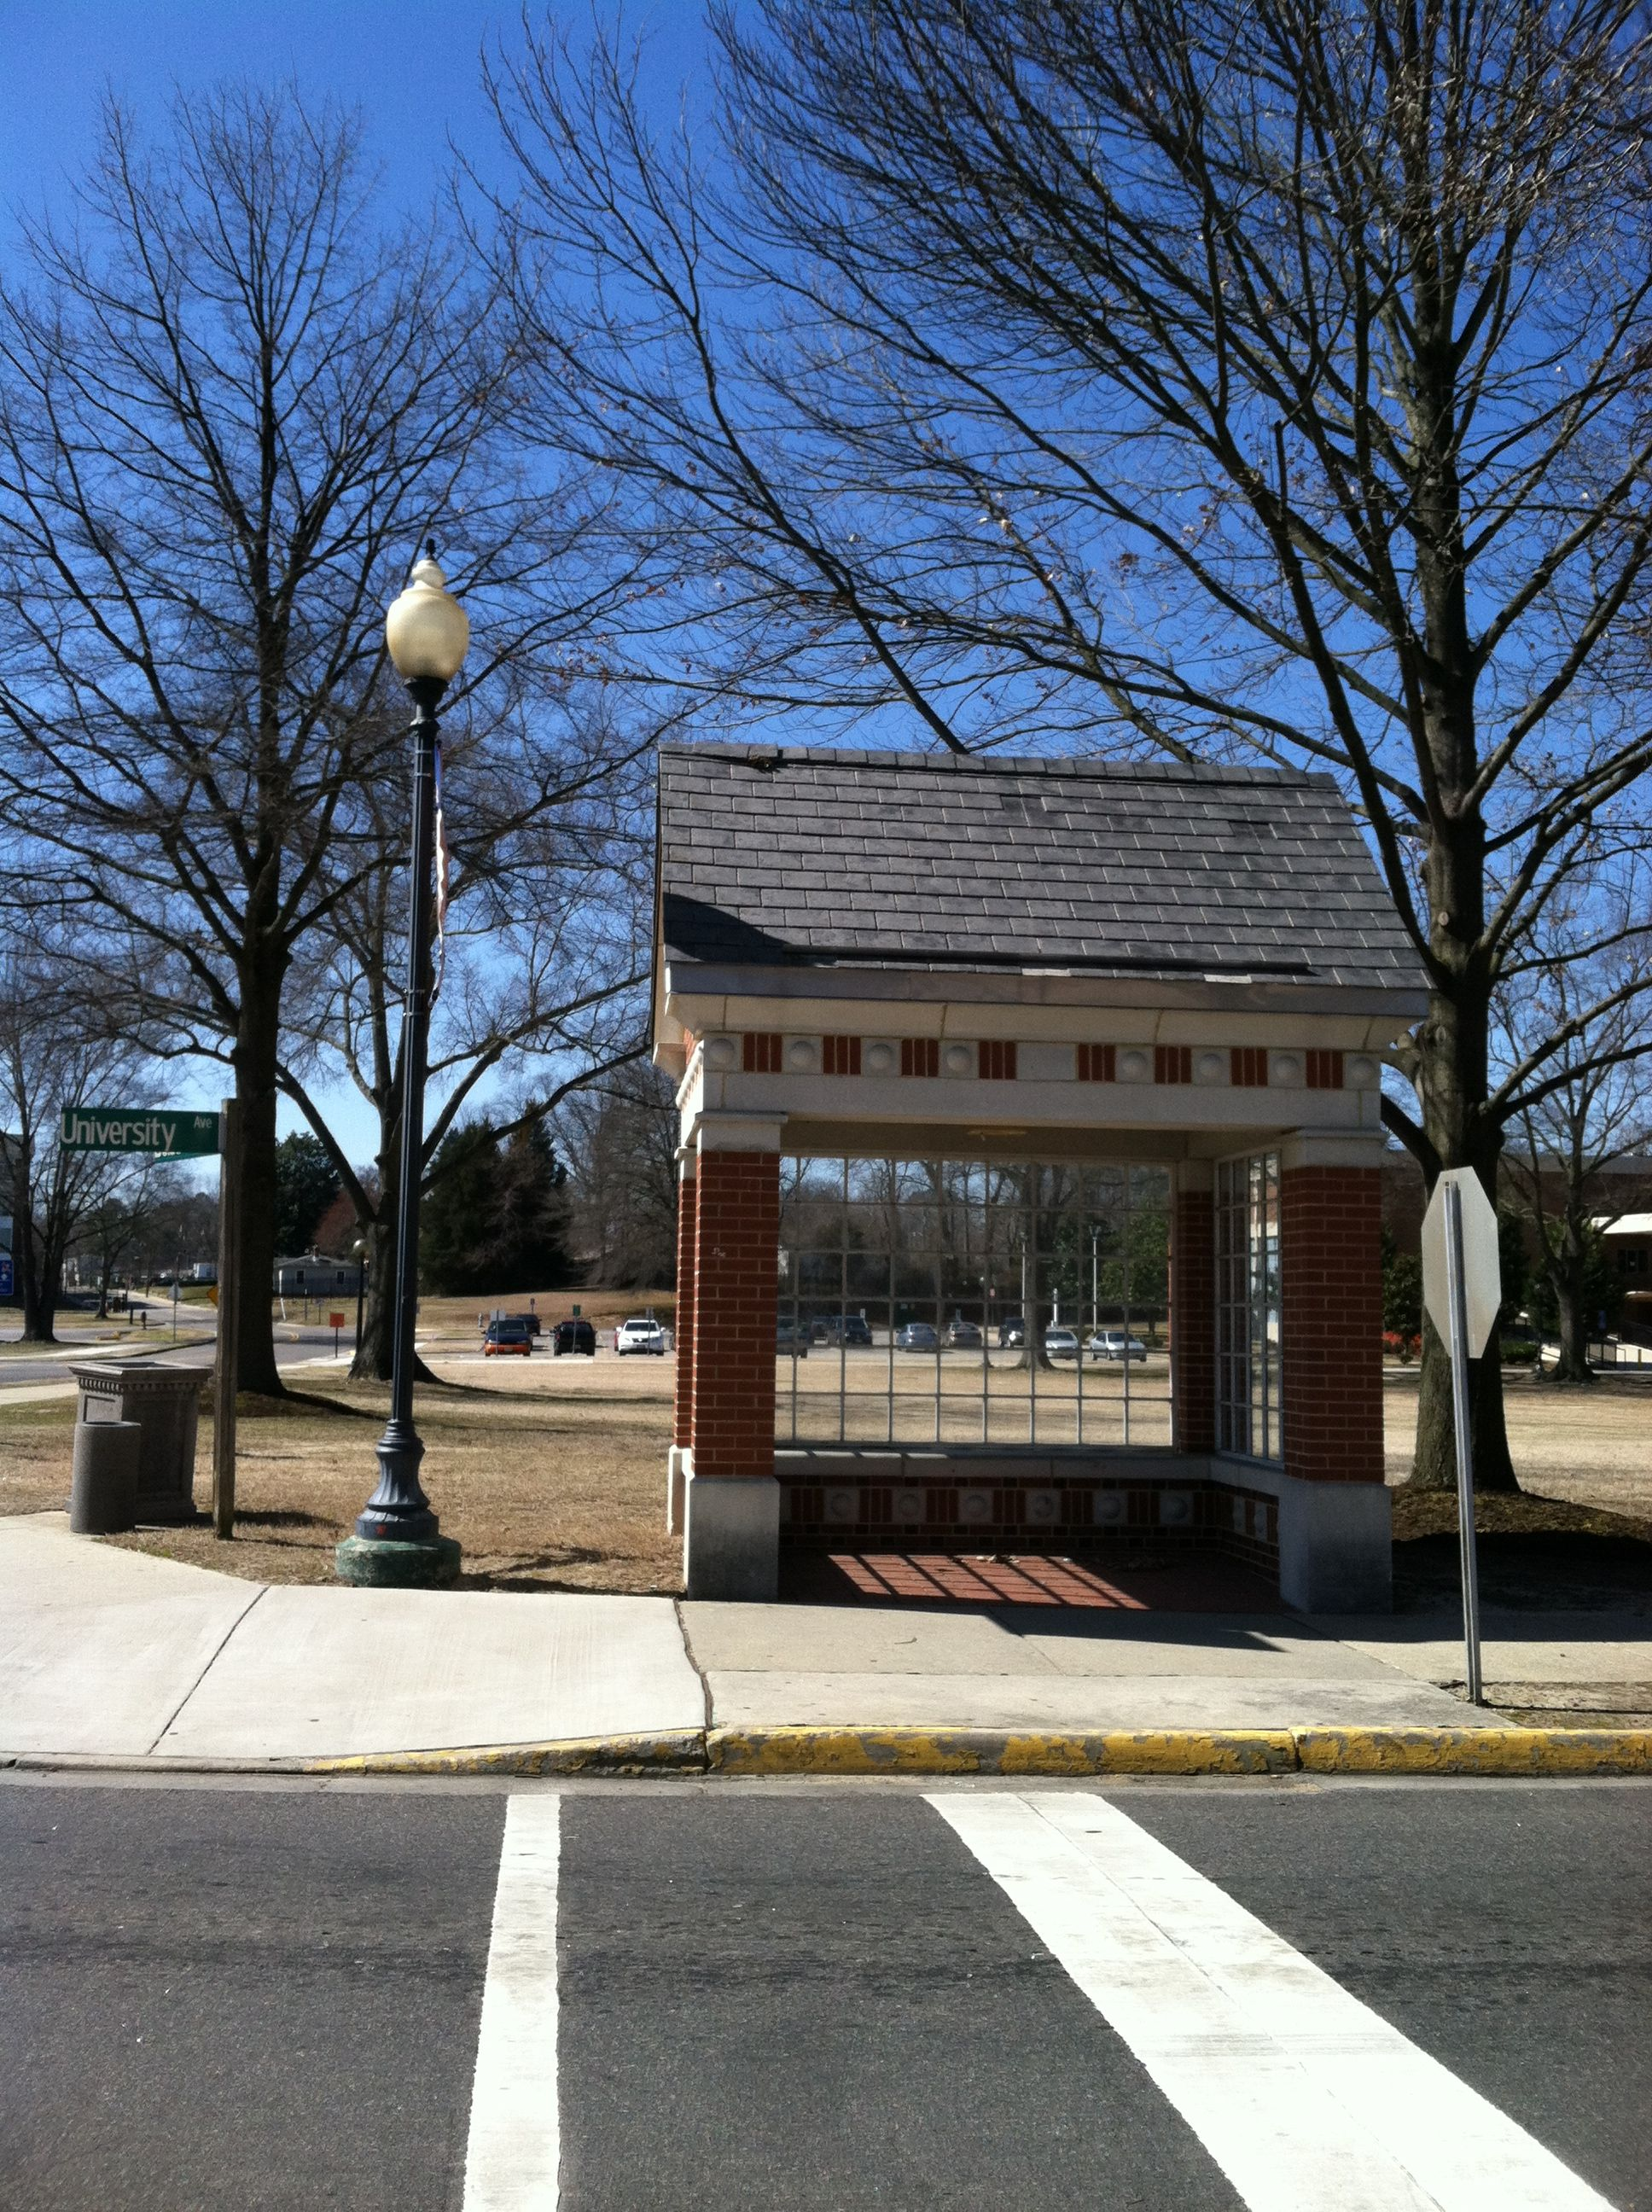 On the corner, a Bus Stop. Virginia state university